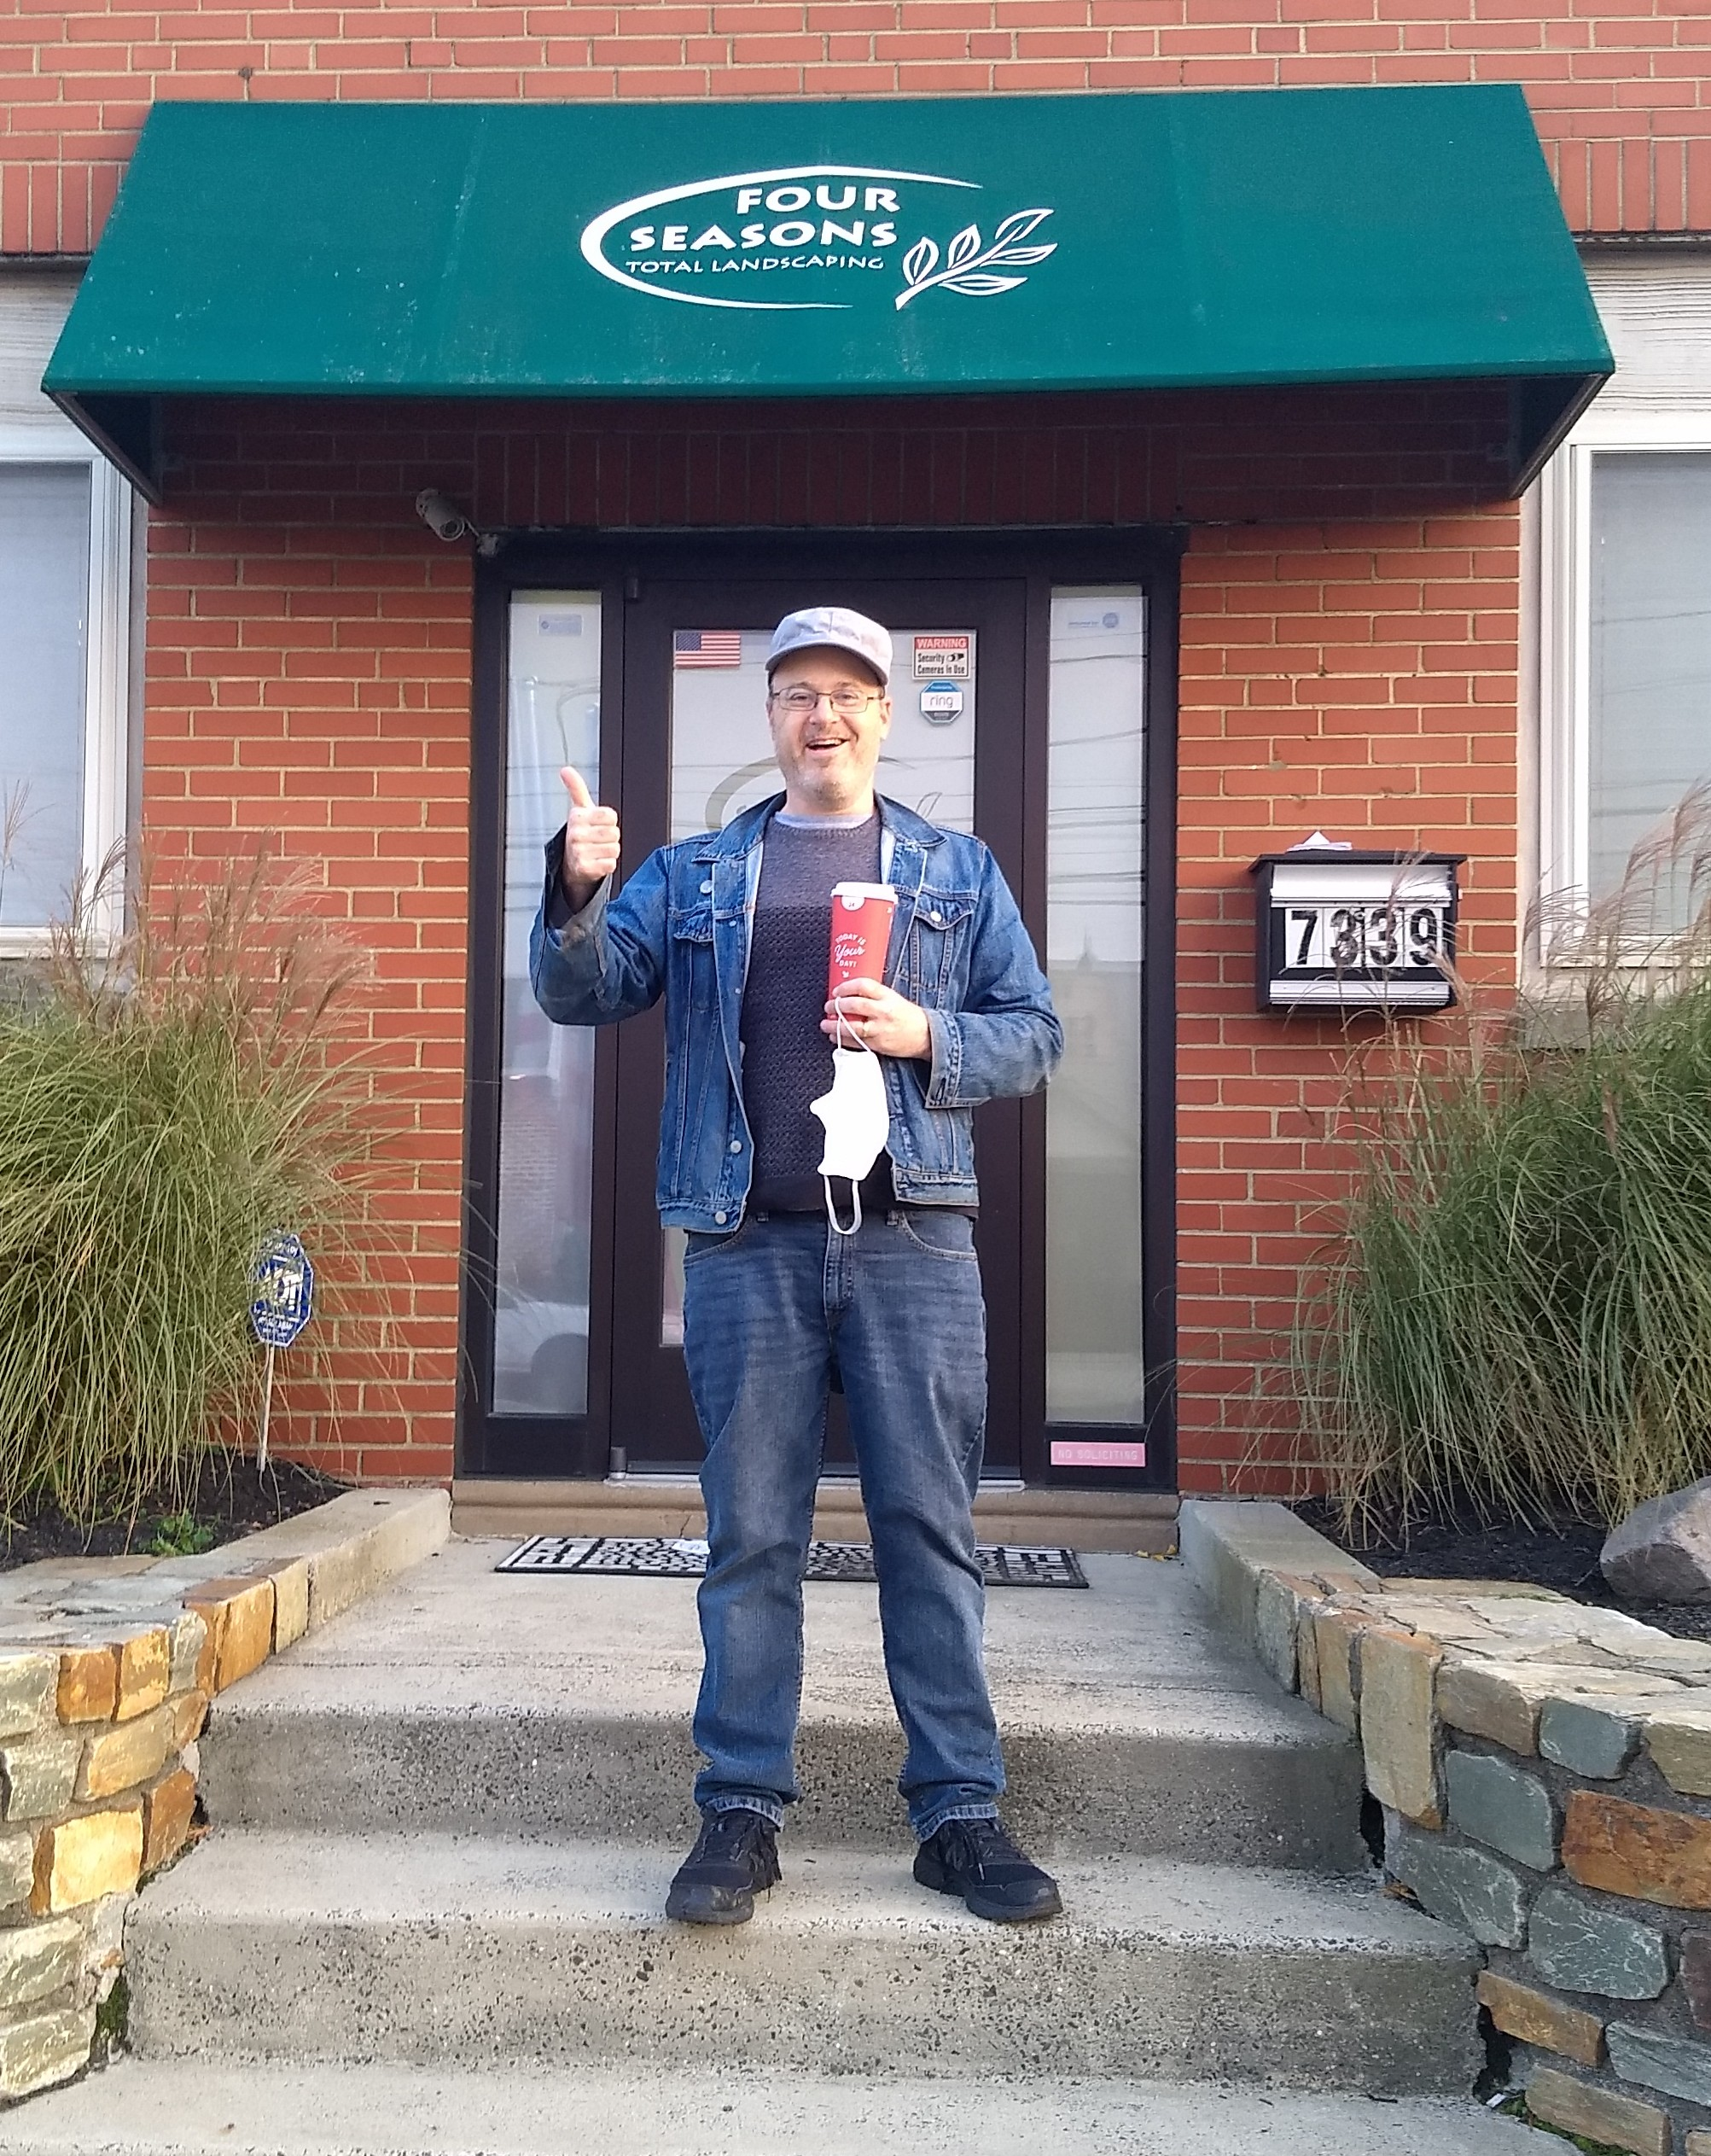 I am smiling in front of the main entrance of Four Seasons Total Landscaping in the Tacony neighborhood of Philadelphia.  I am wearing a gray cap and sweater, jeans, and a blue denim jacket.  I have a red paper Wawa coffee cup in one hand, and am giving a thumbs up with the other.